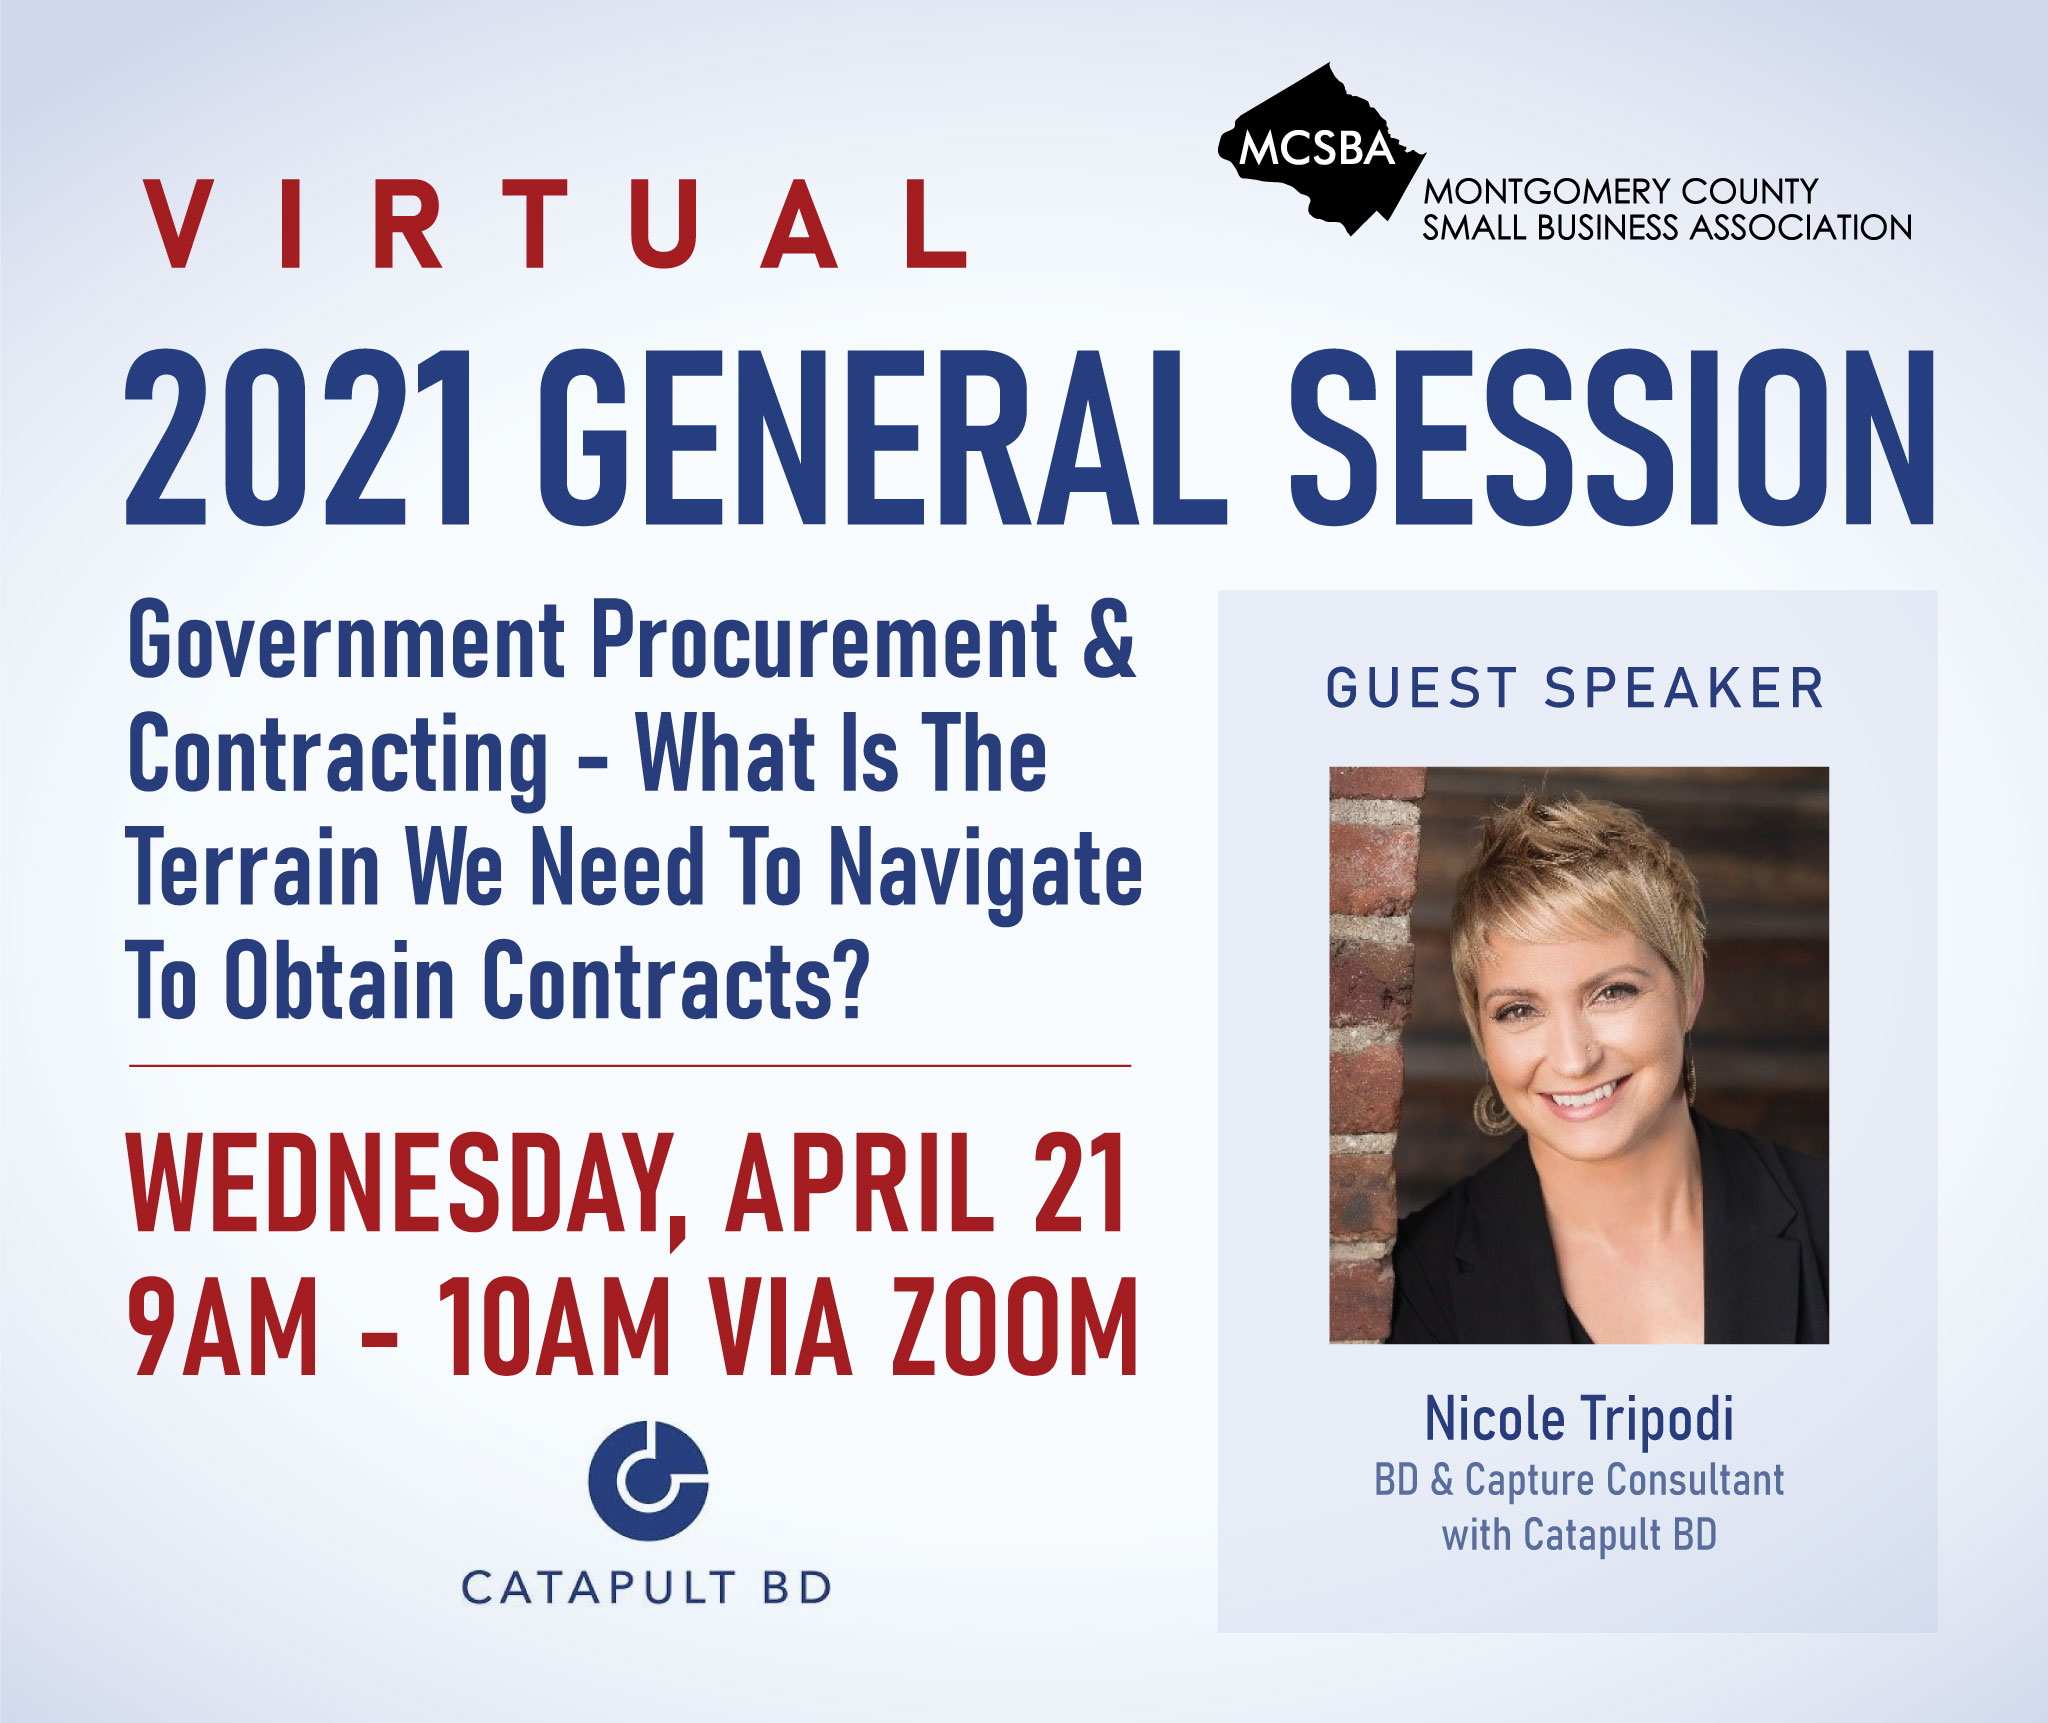 Government Procurement & Contracting, 04/21/2021